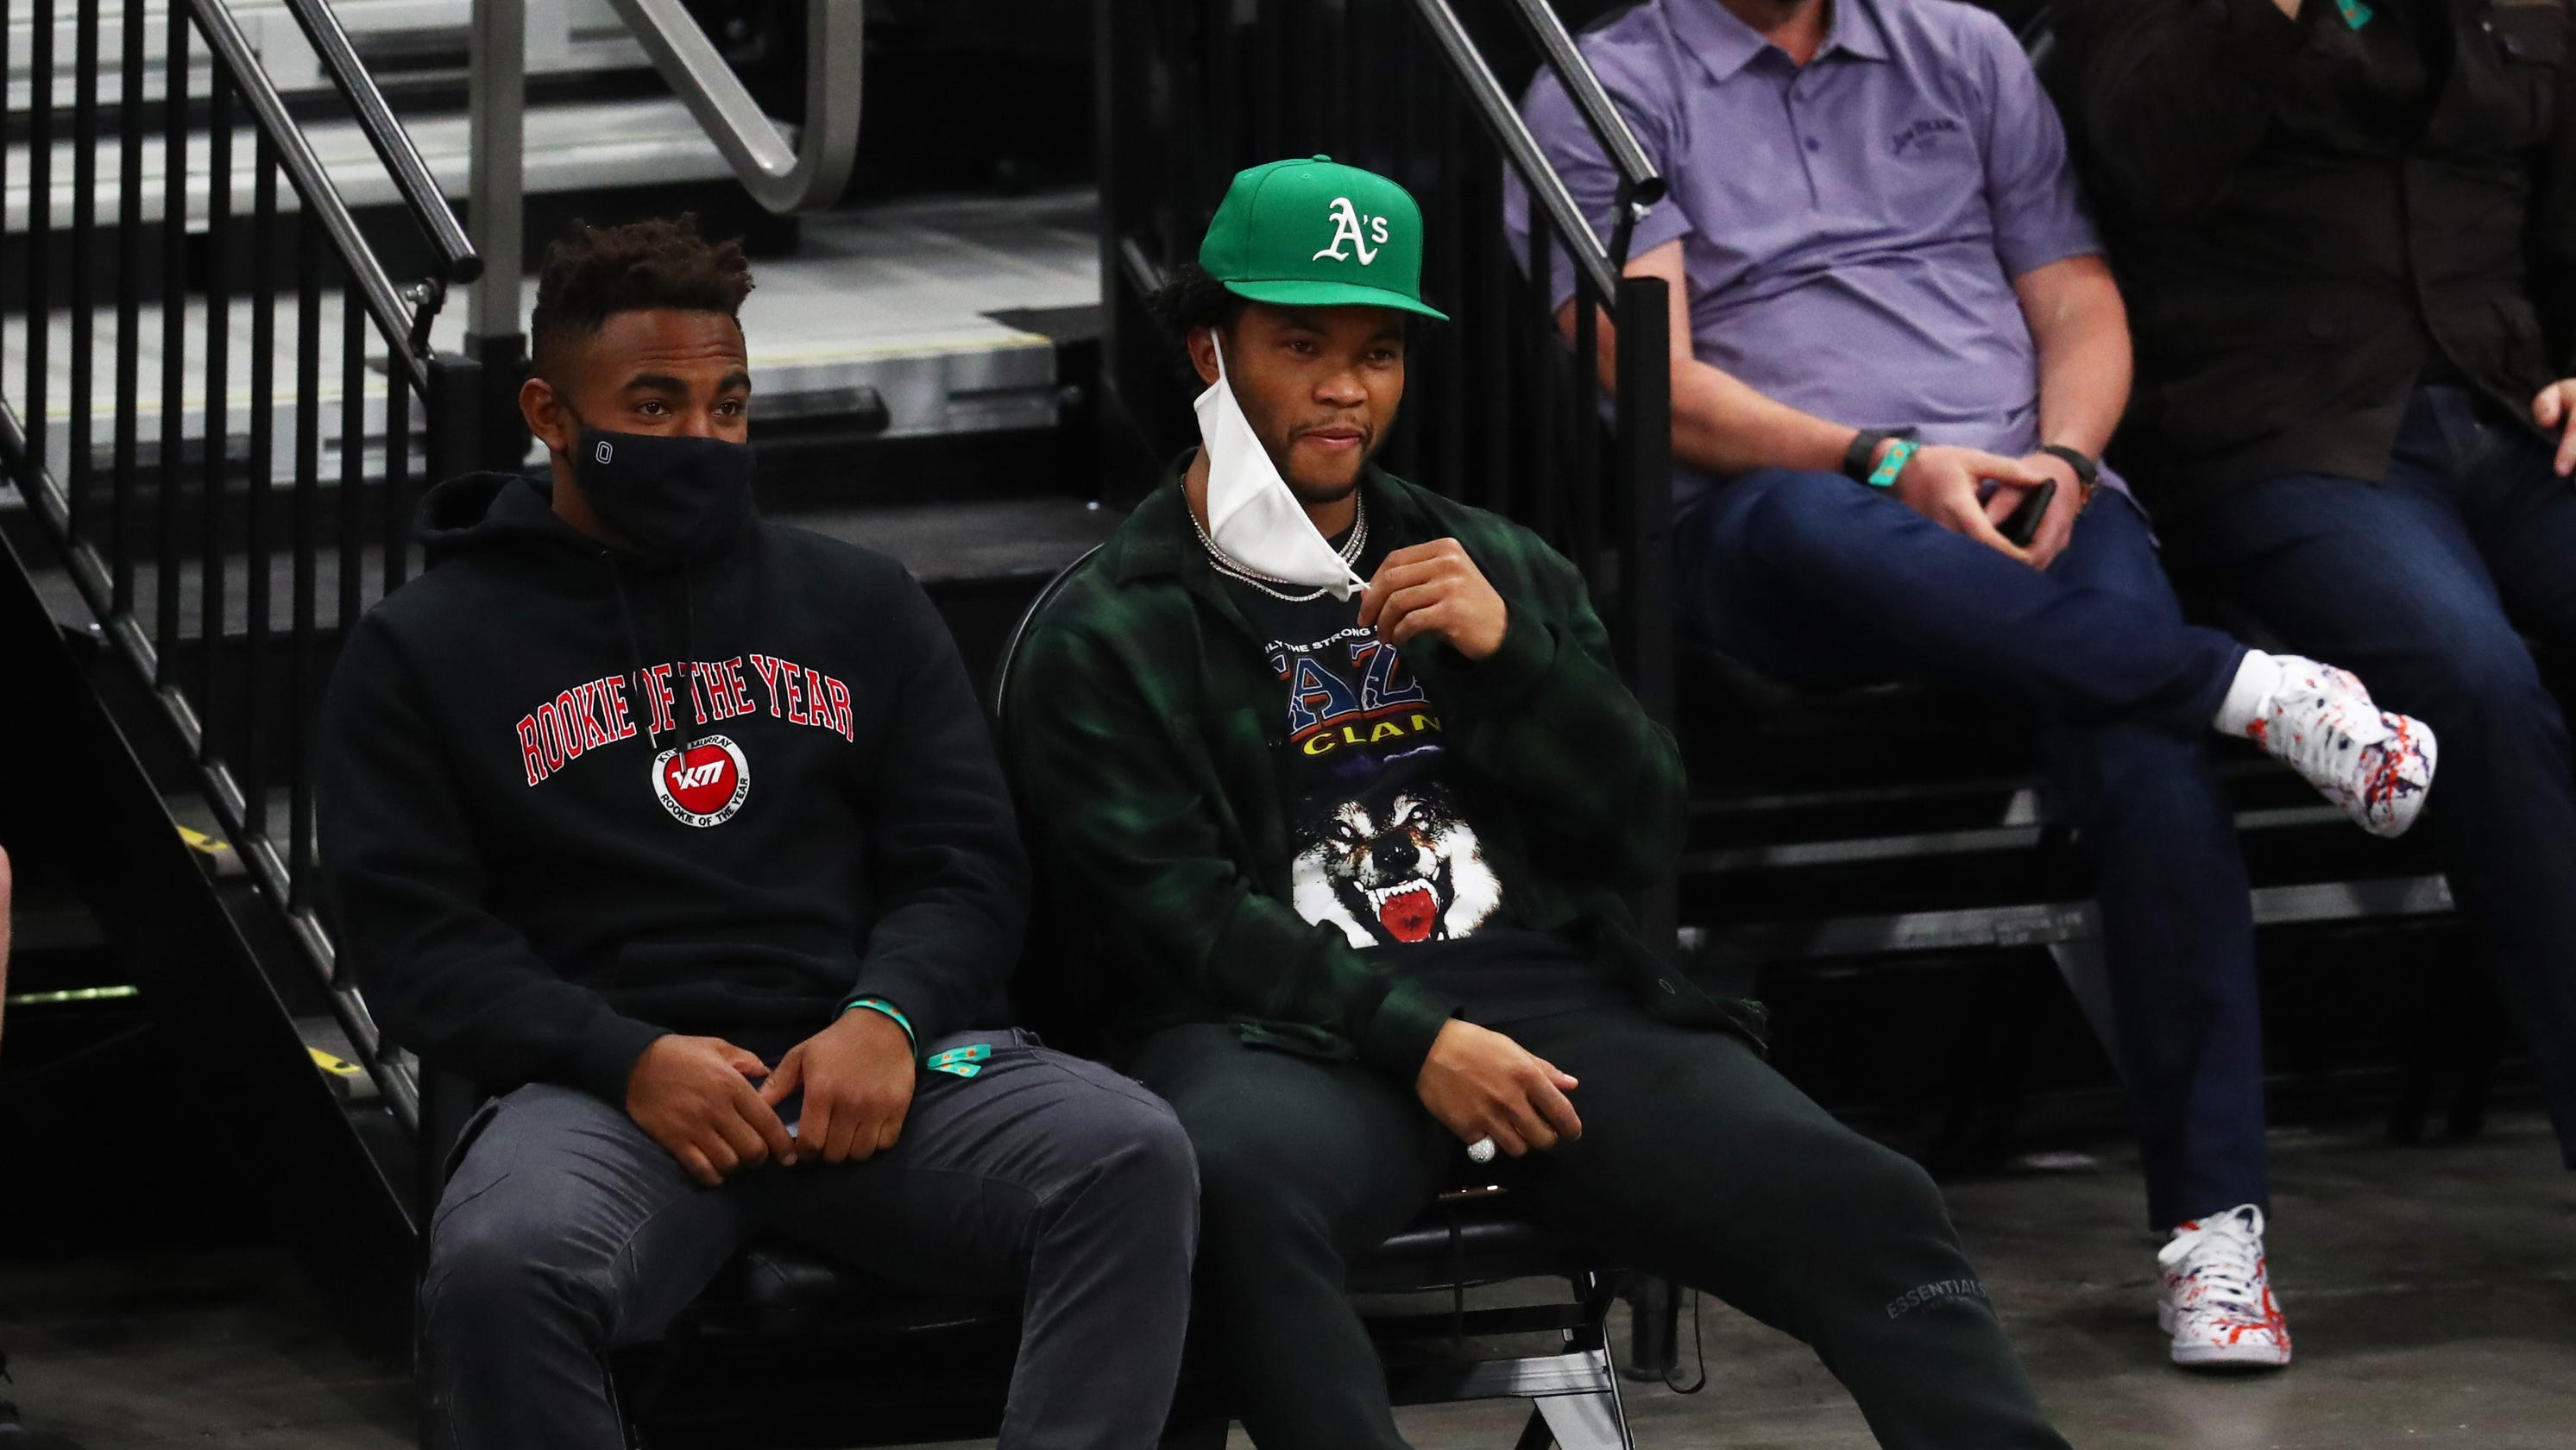 Arizona Cardinals QB Kyler Murray's hat 'creates stir' at Phoenix Suns game